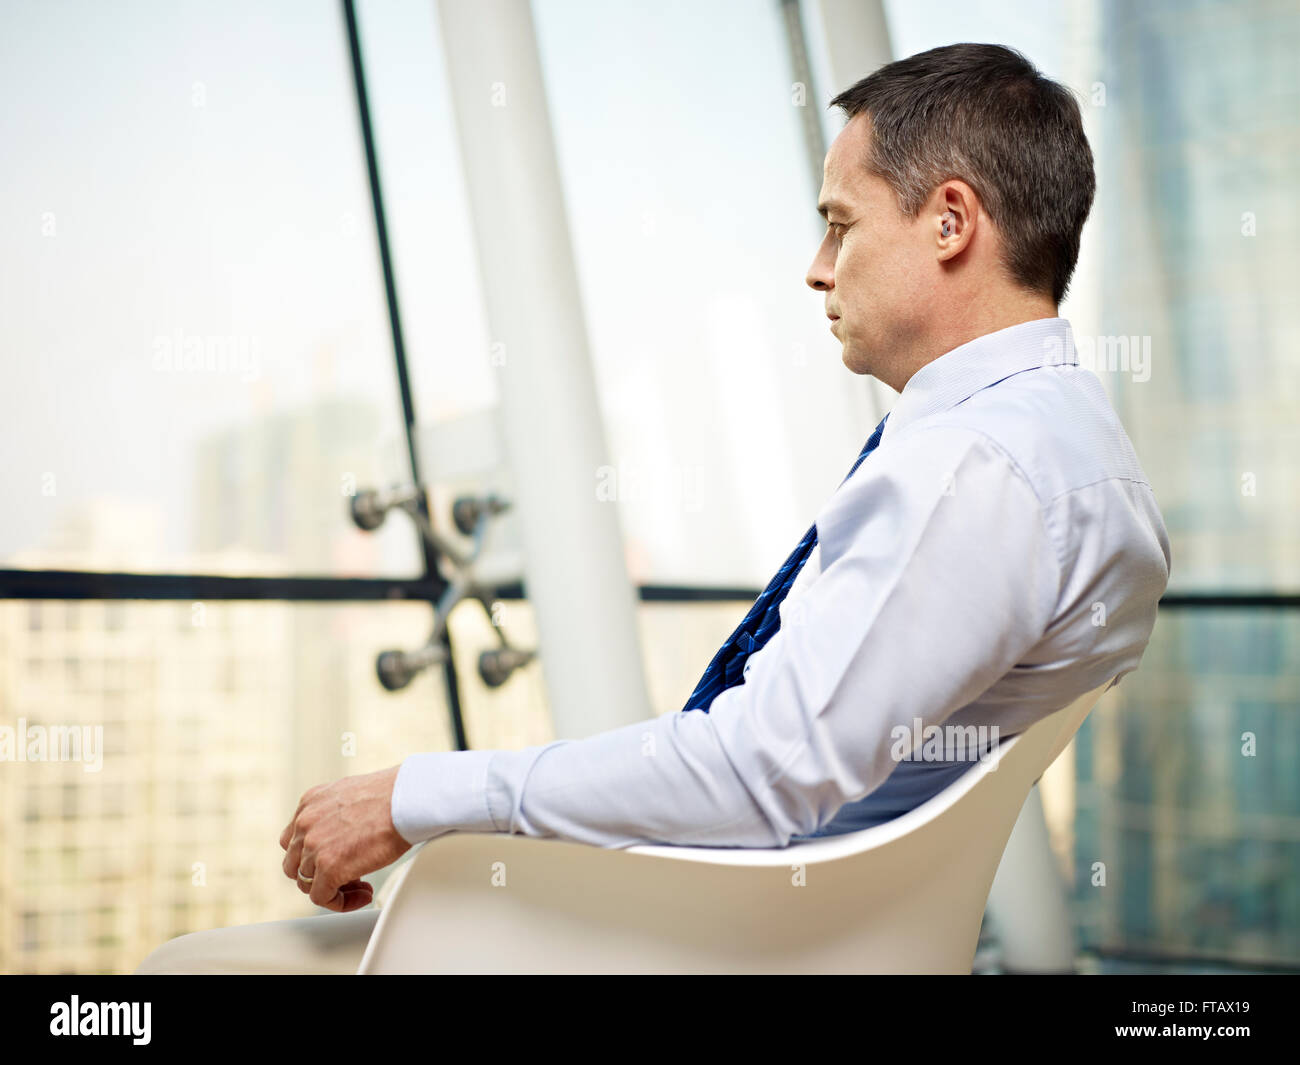 caucasian business executive sitting by the window in a chair thinking in office. - Stock Image